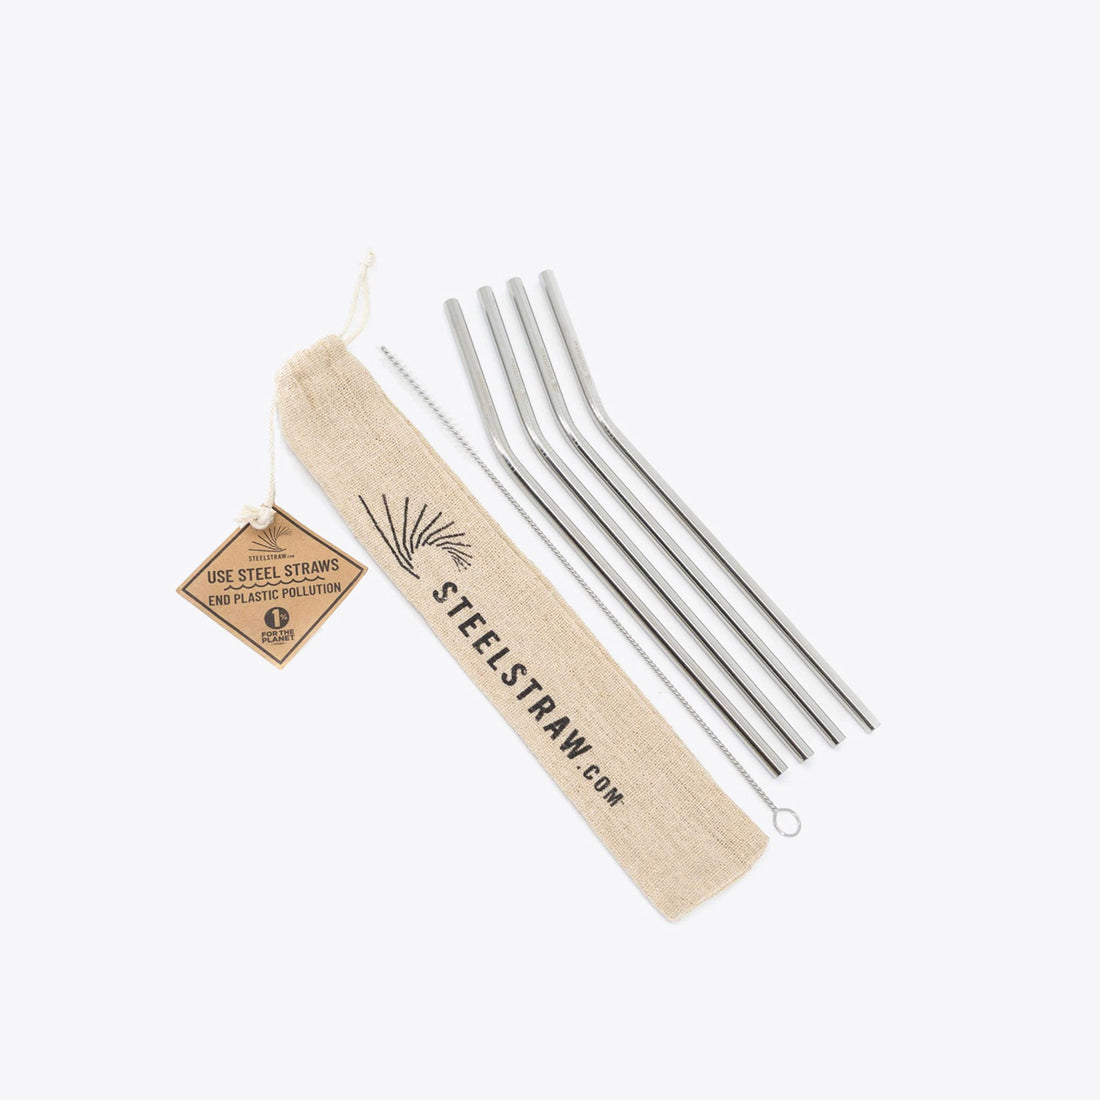 Steel Straw Metal Straw Set Steel Straw